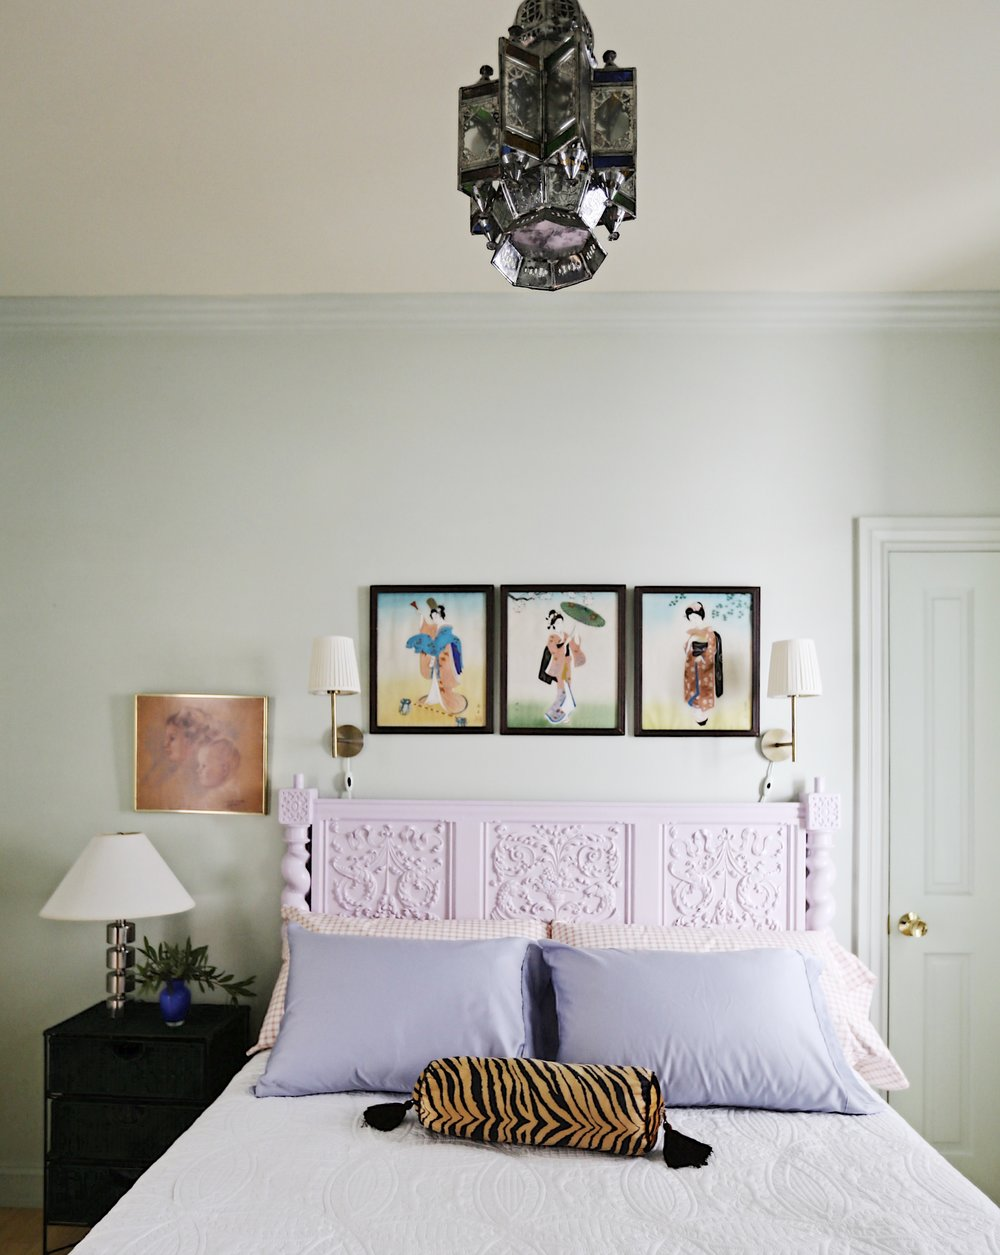 katie_gavigan_bedroom_08.jpg